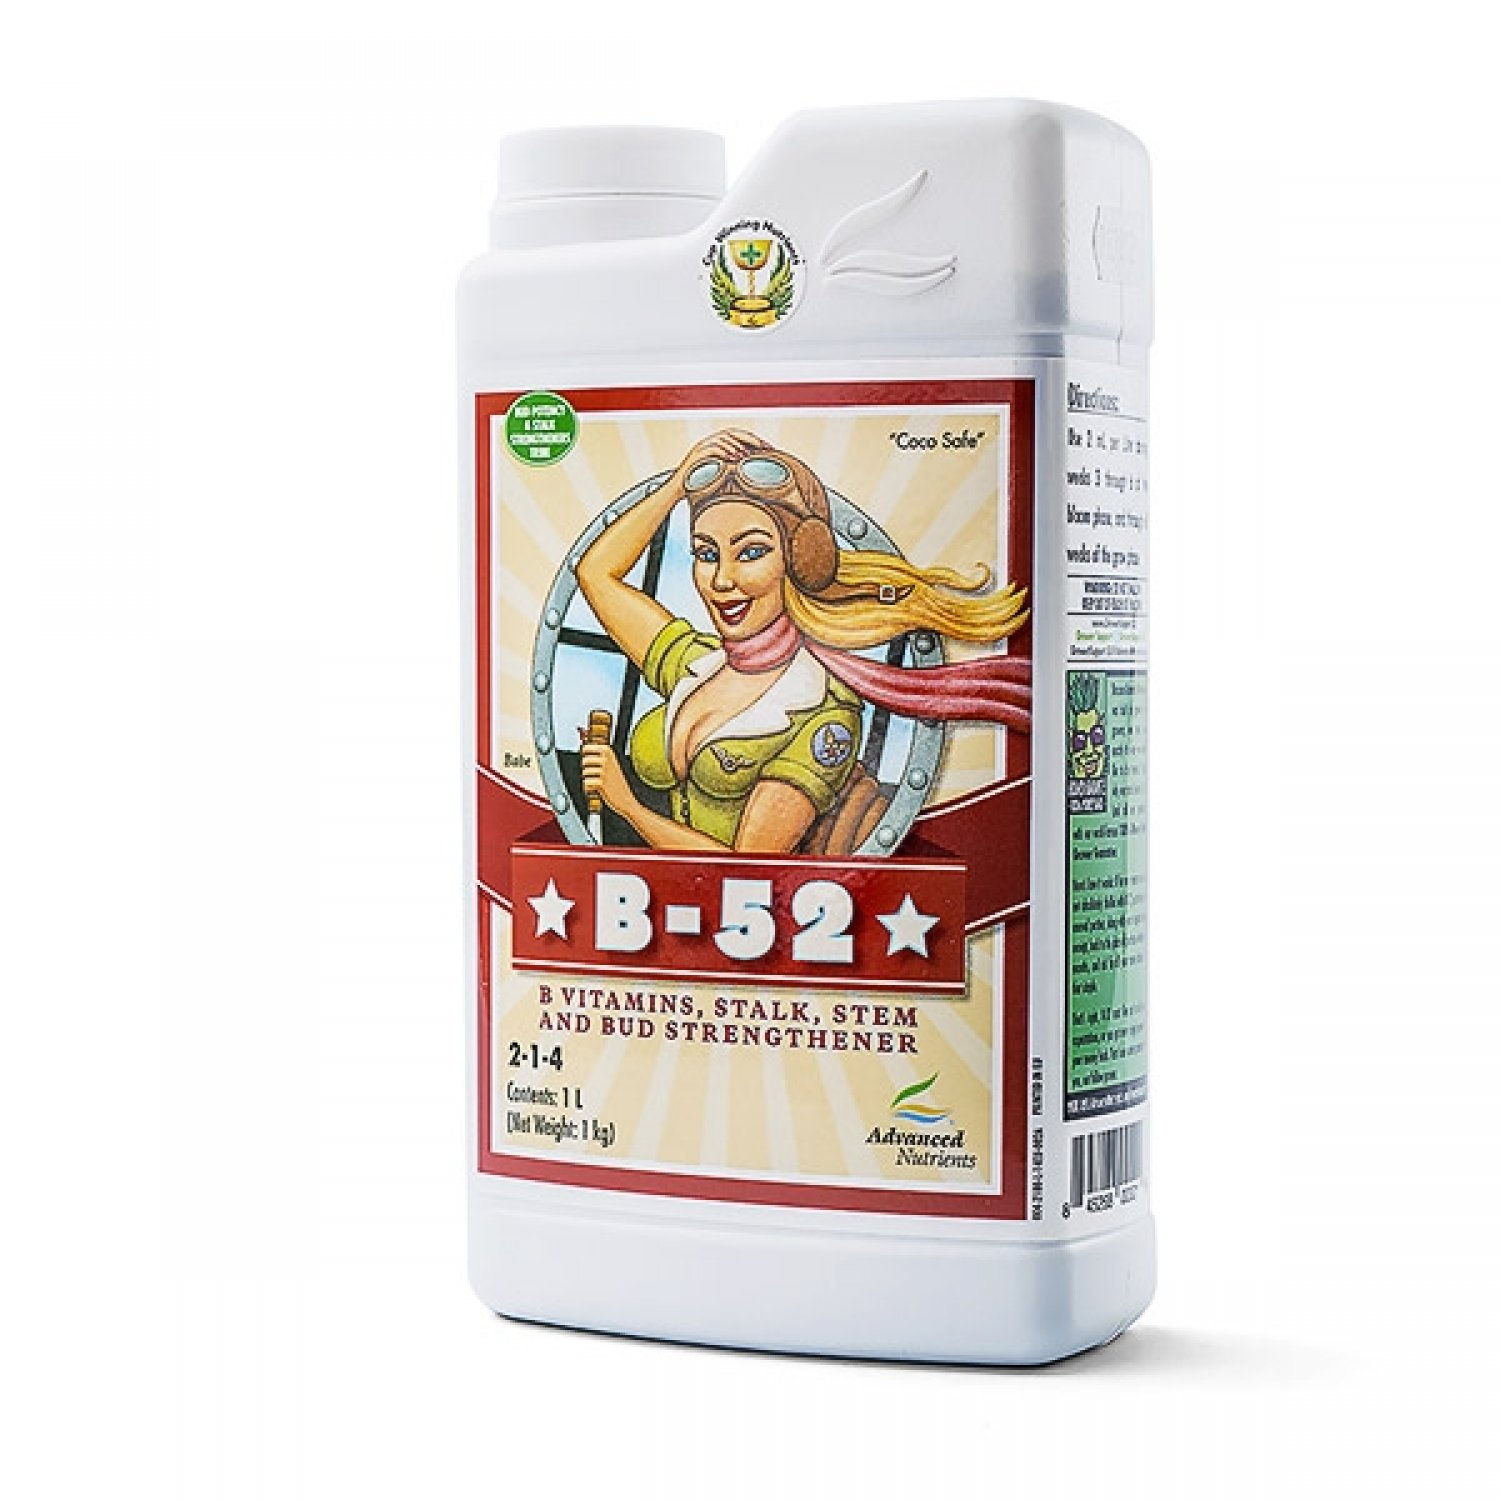 B-52 Fertilizer Booster 0.5L